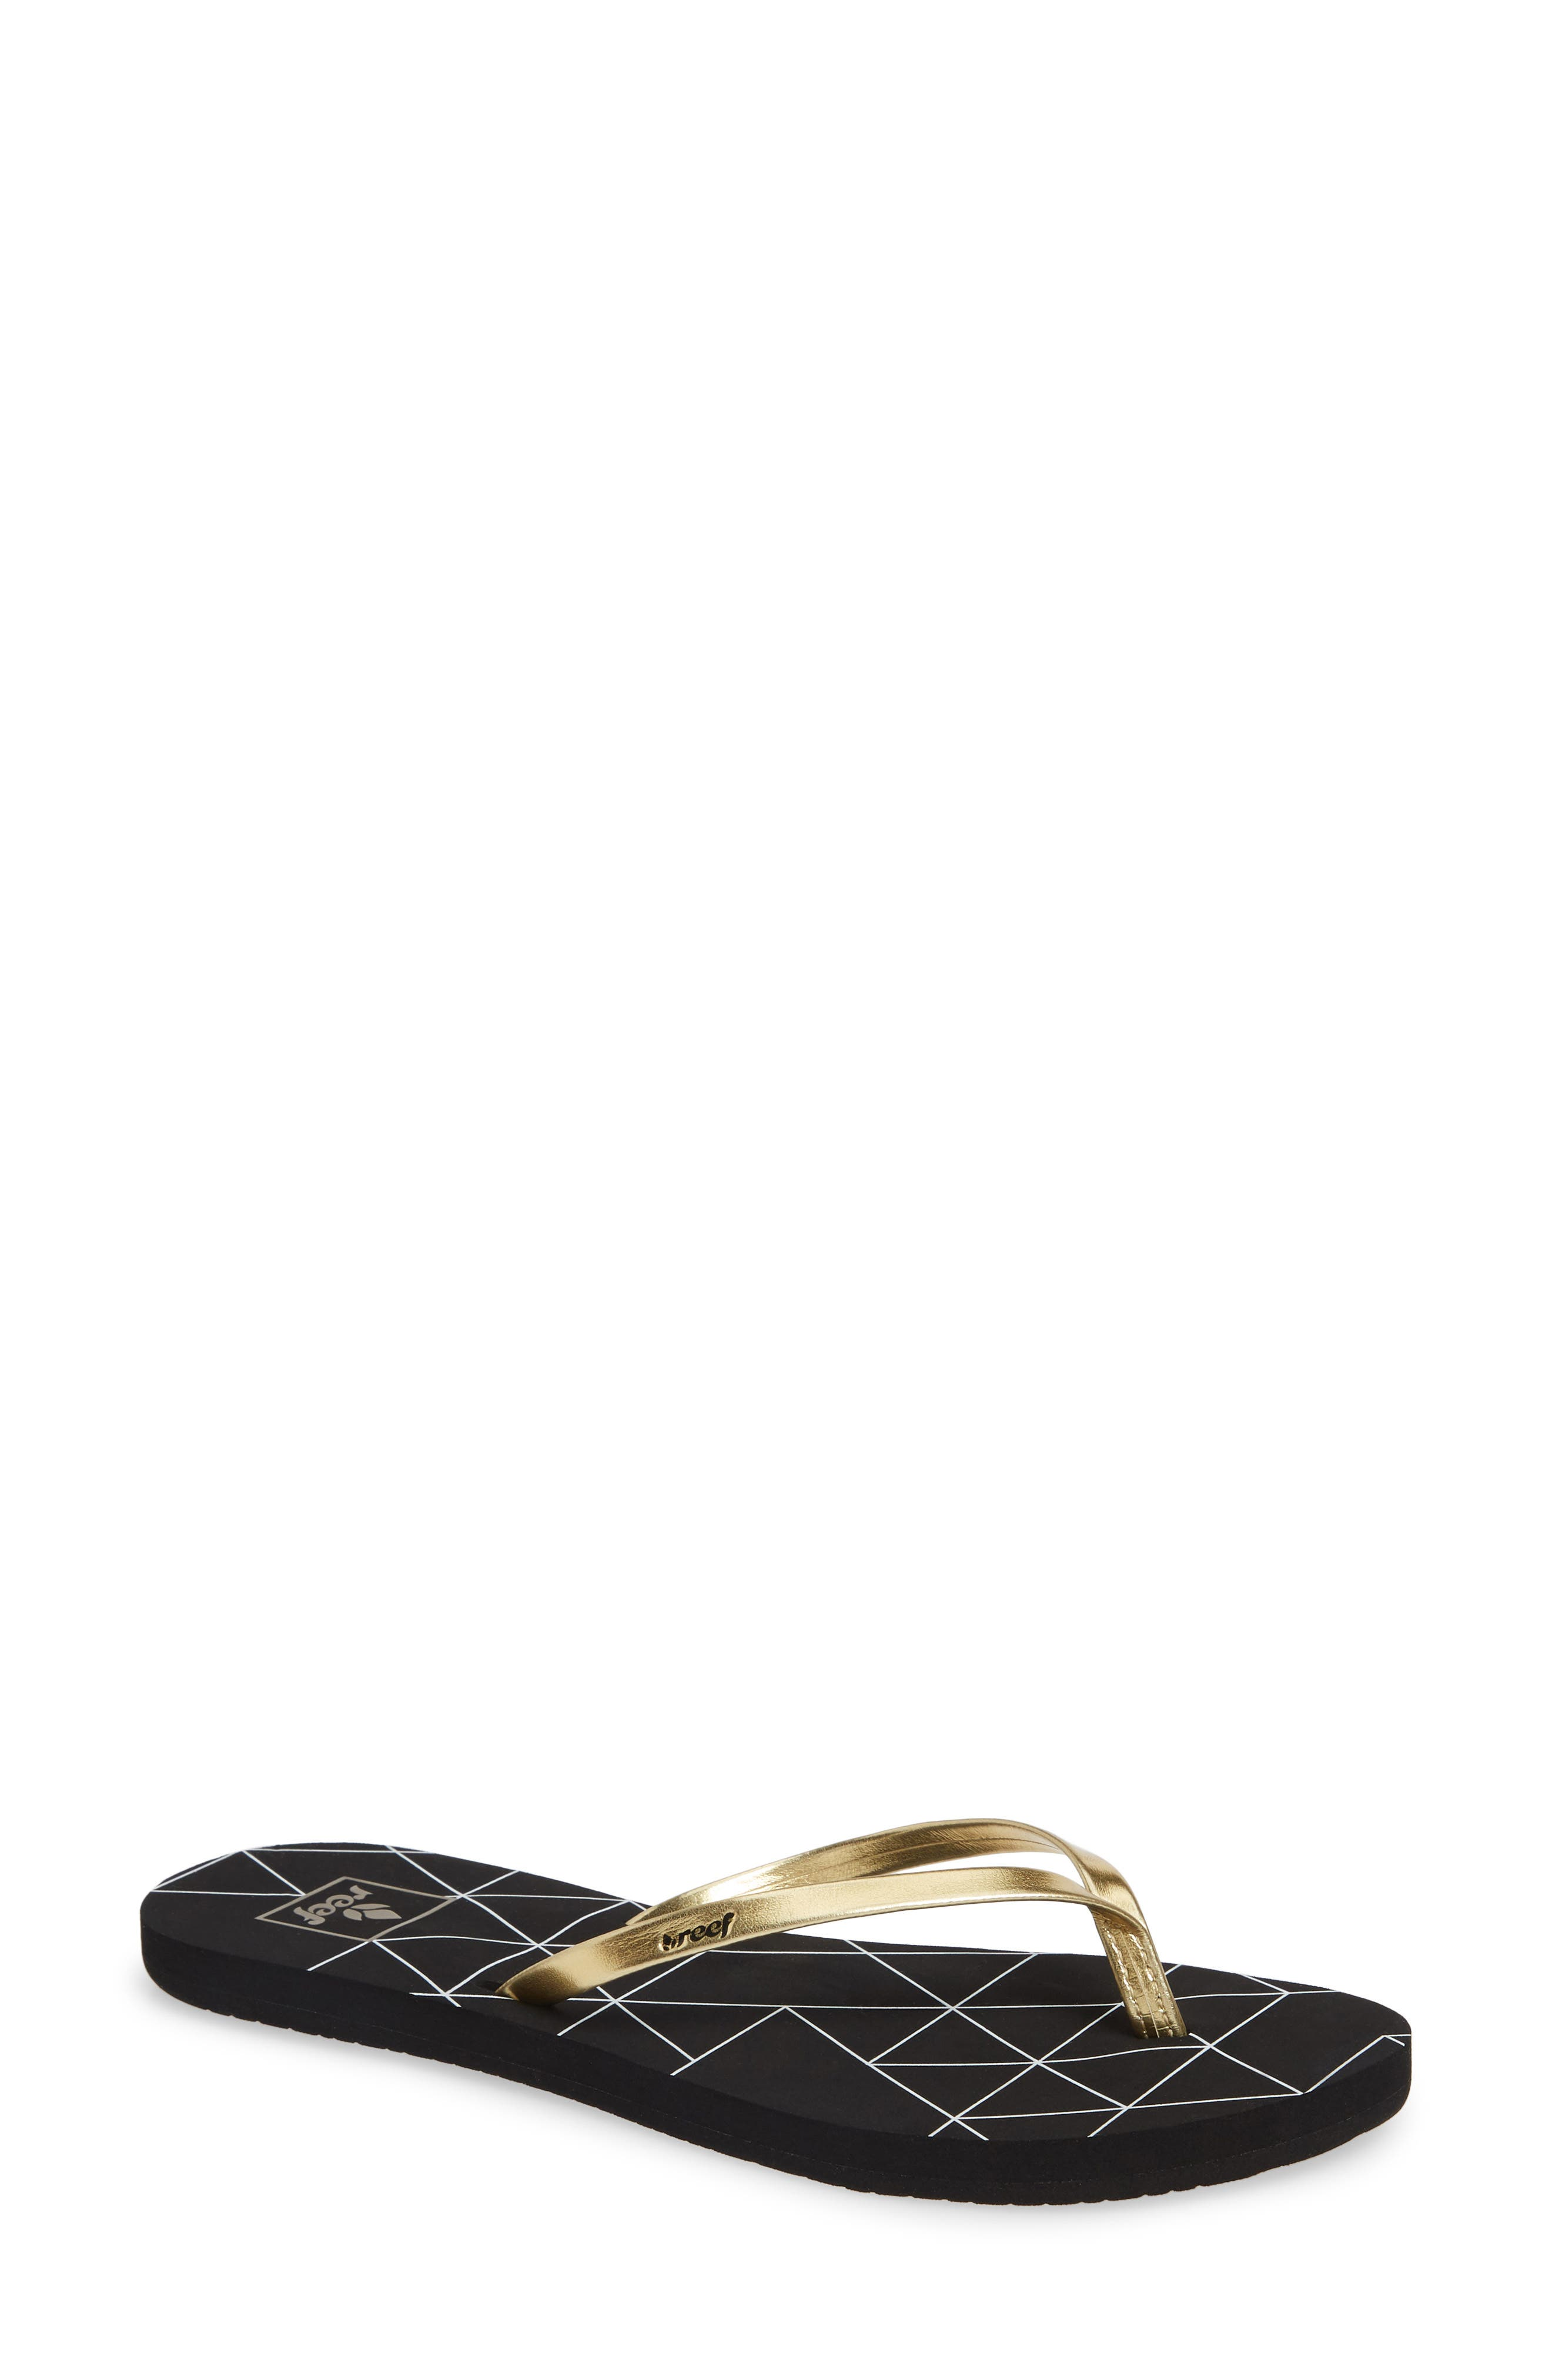 REEF, Bliss-Full Flip Flop, Main thumbnail 1, color, GOLD PYRAMIDS